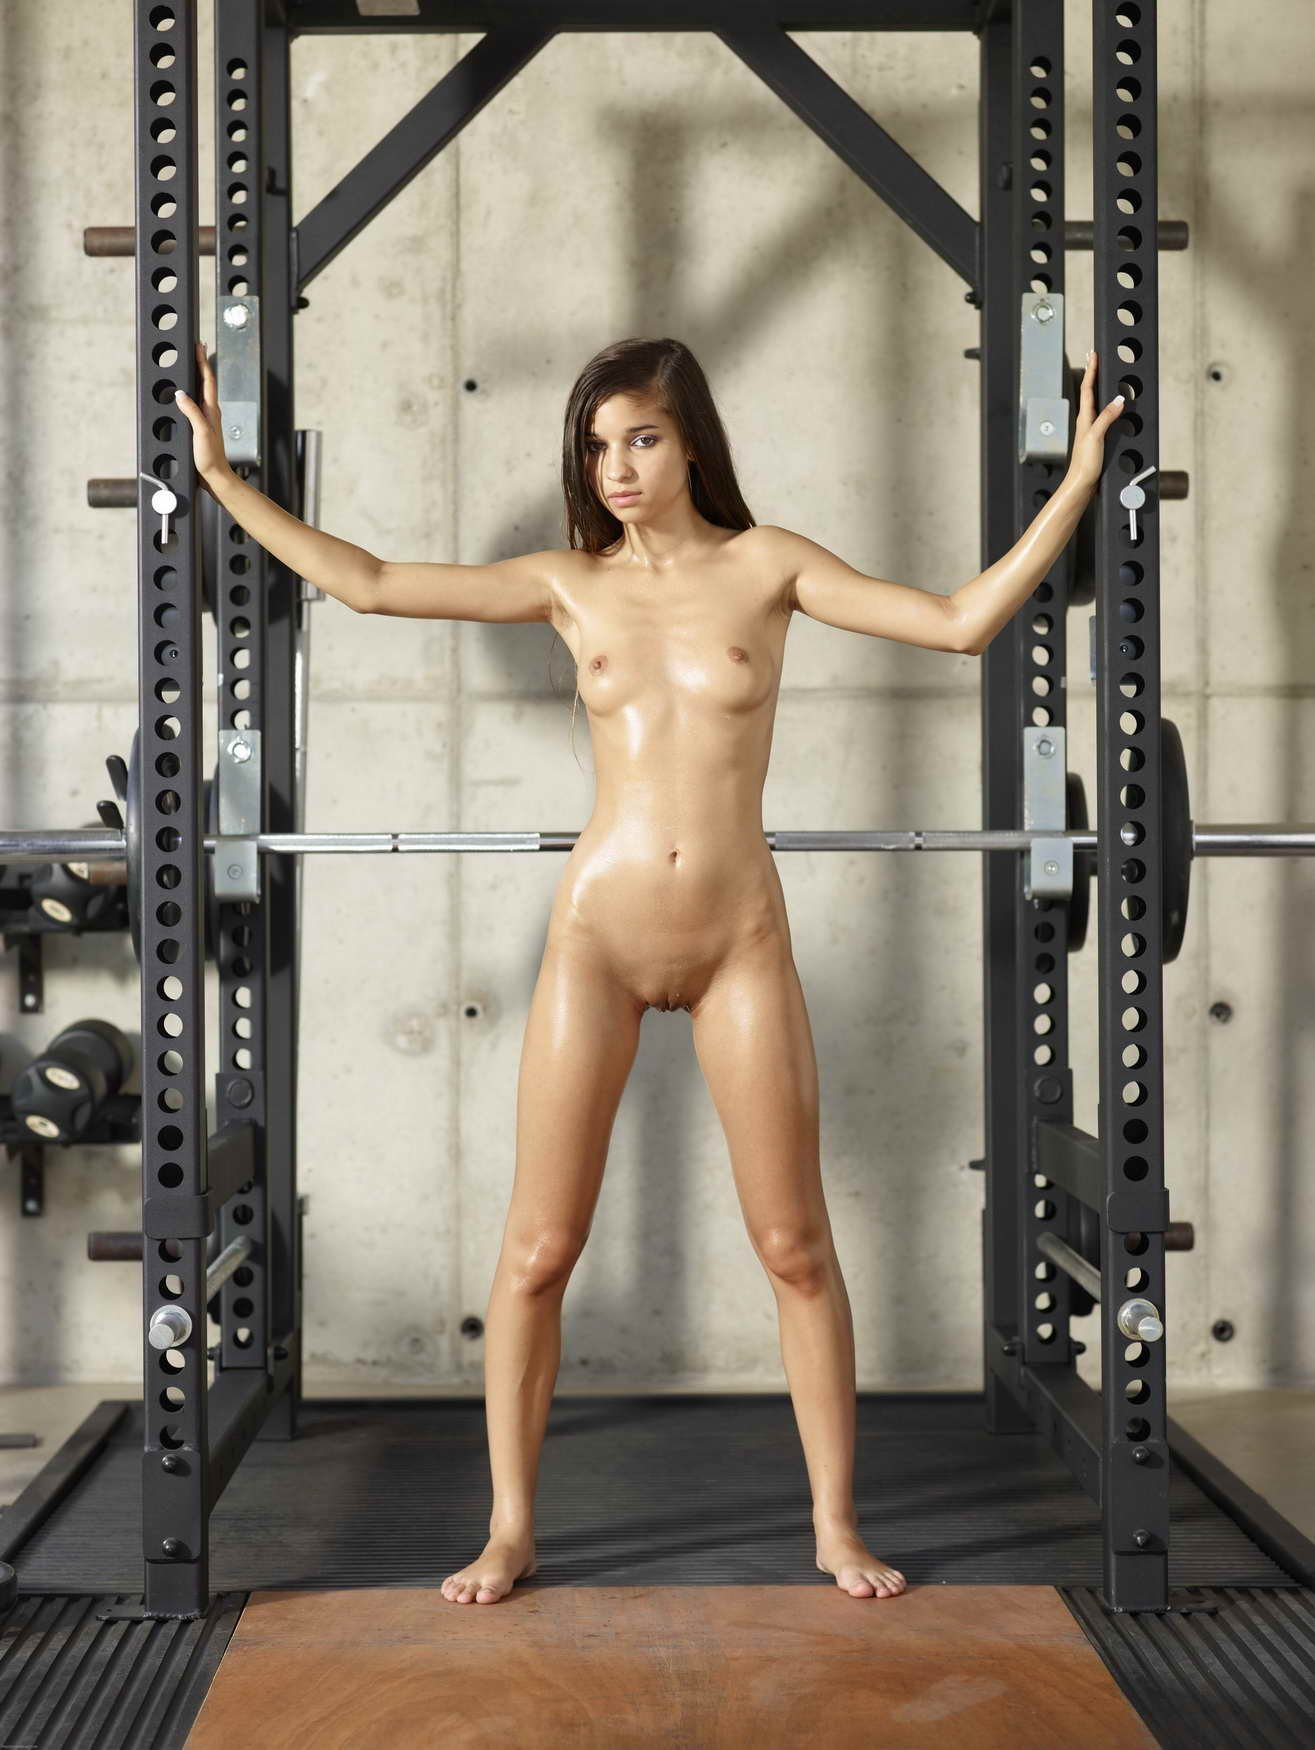 Nude video workout